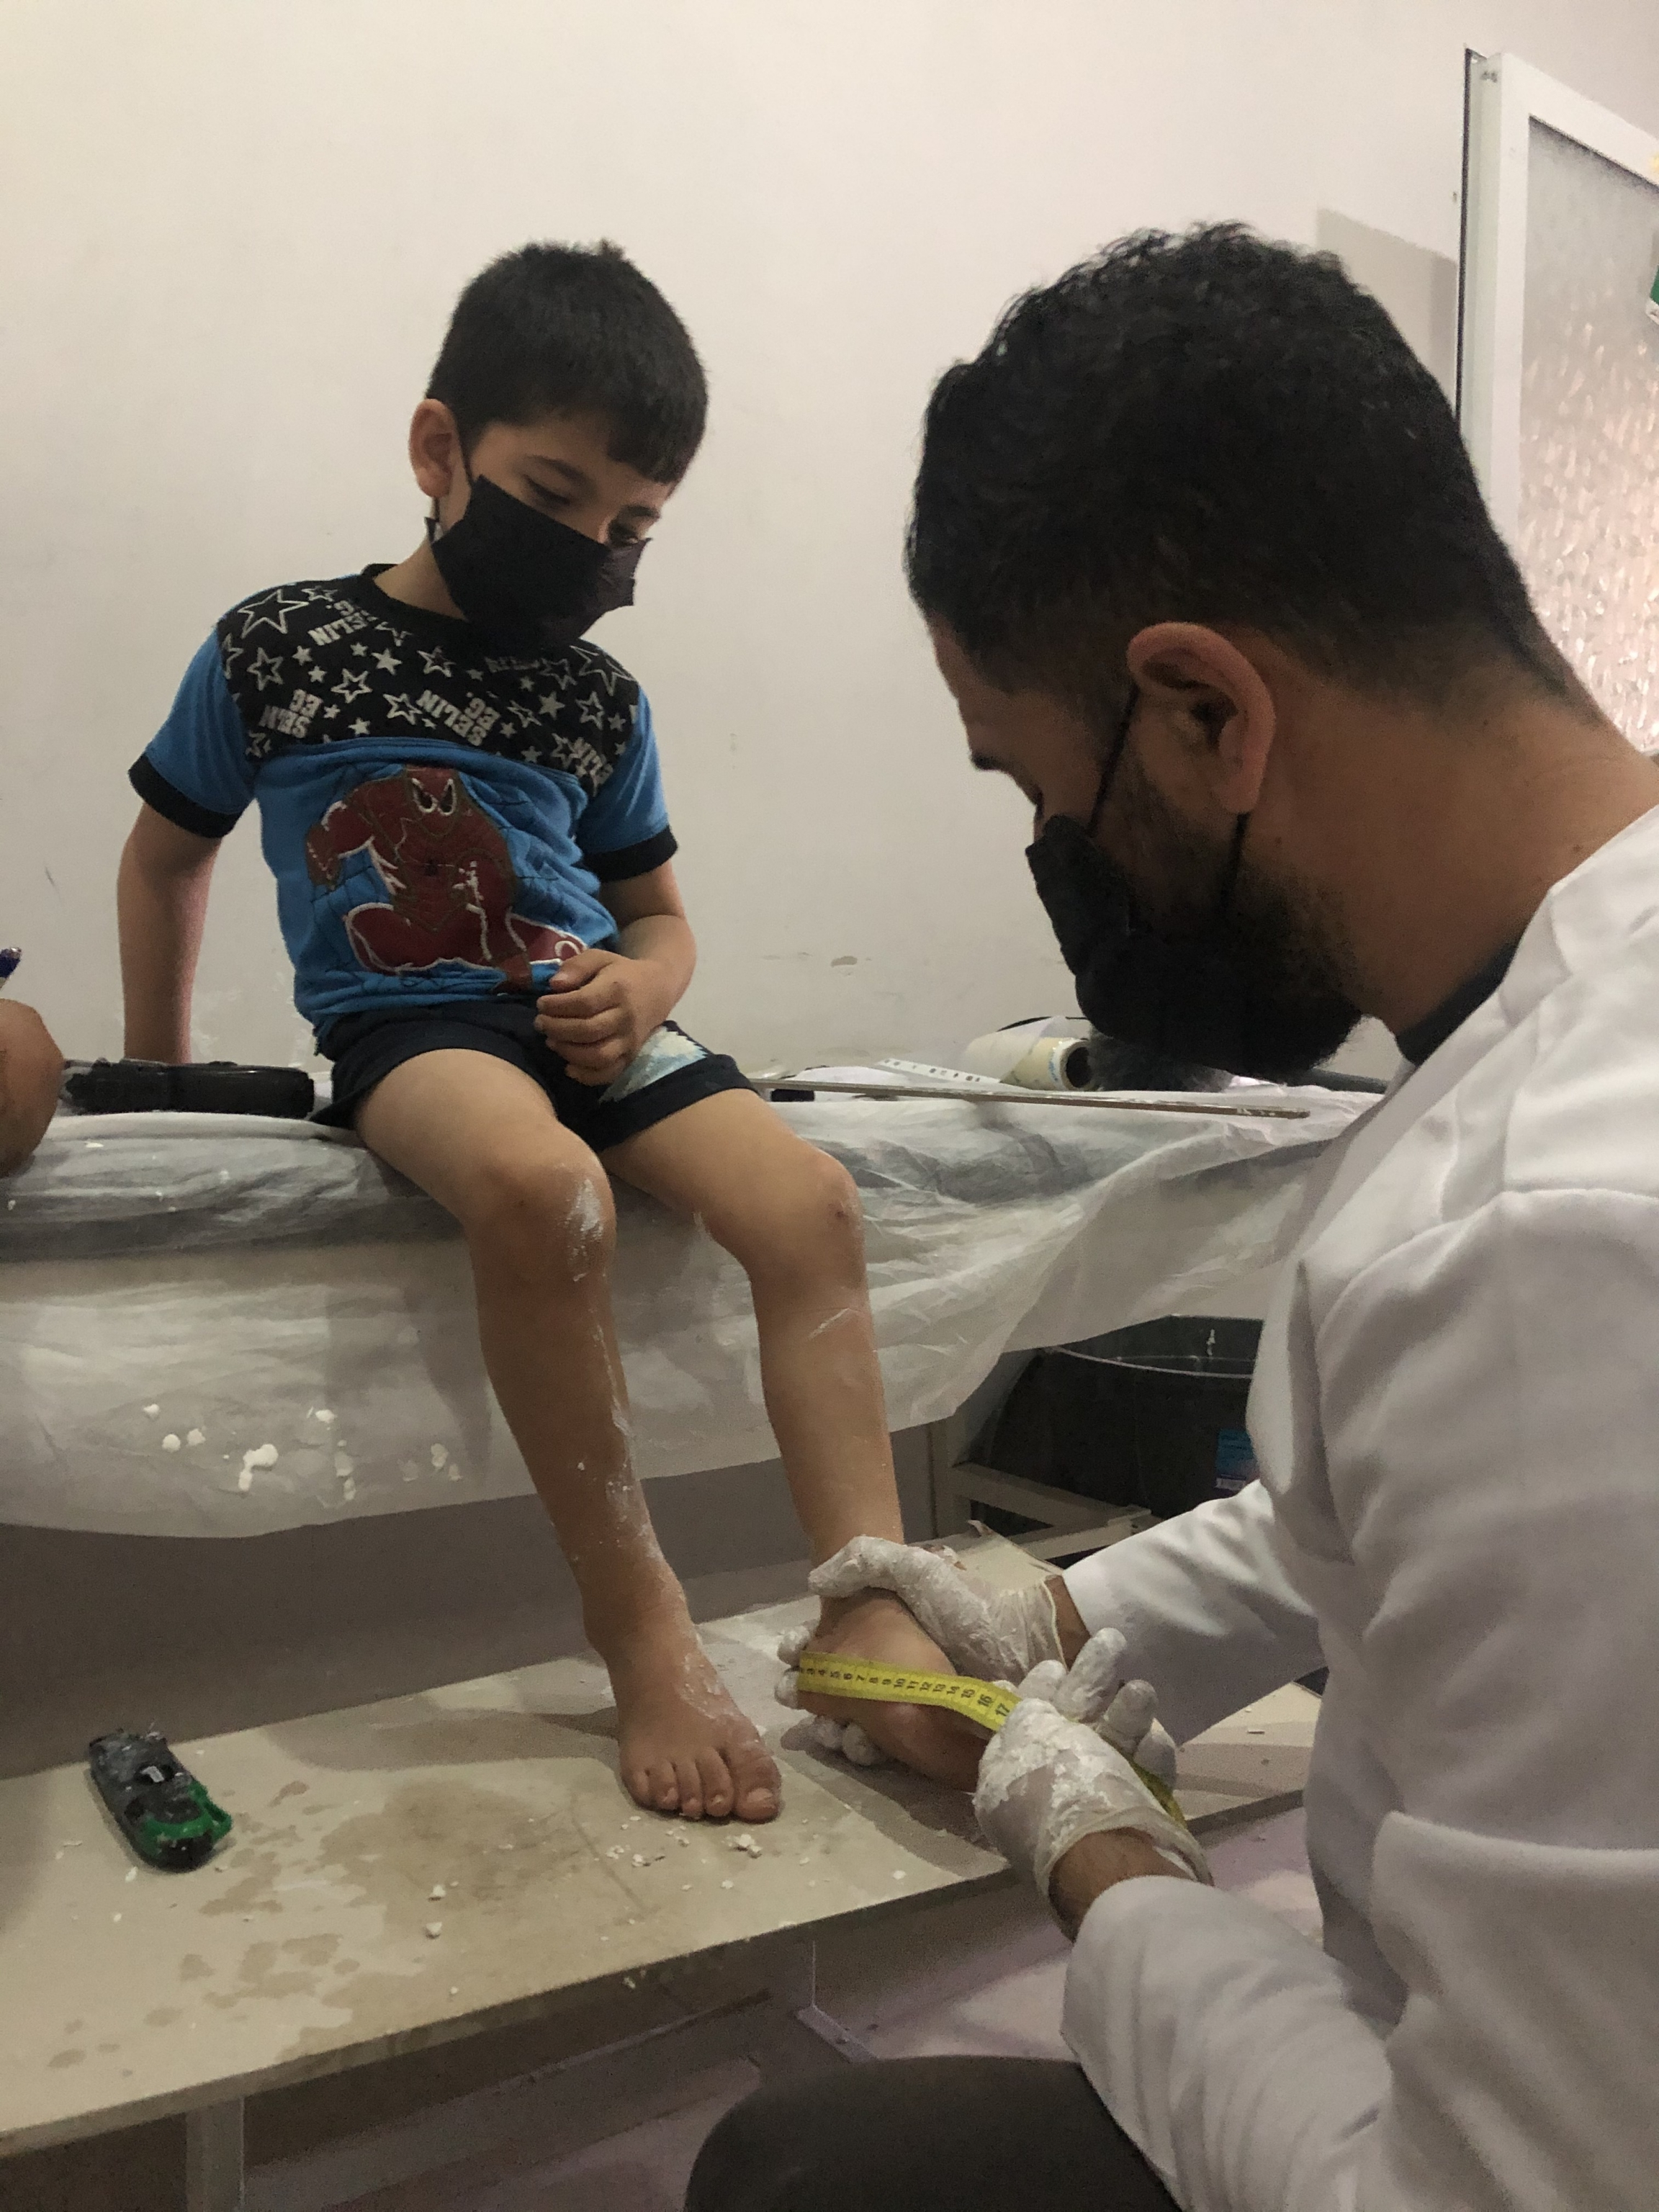 Five-year-old Jad al-Aweis suffers from cerebral palsy due to lack of oxygen at birth. Here, a specialist at a prosthetic limbs center in Turkey takes measurements of his legs so he can make braces that will help Jad walk.